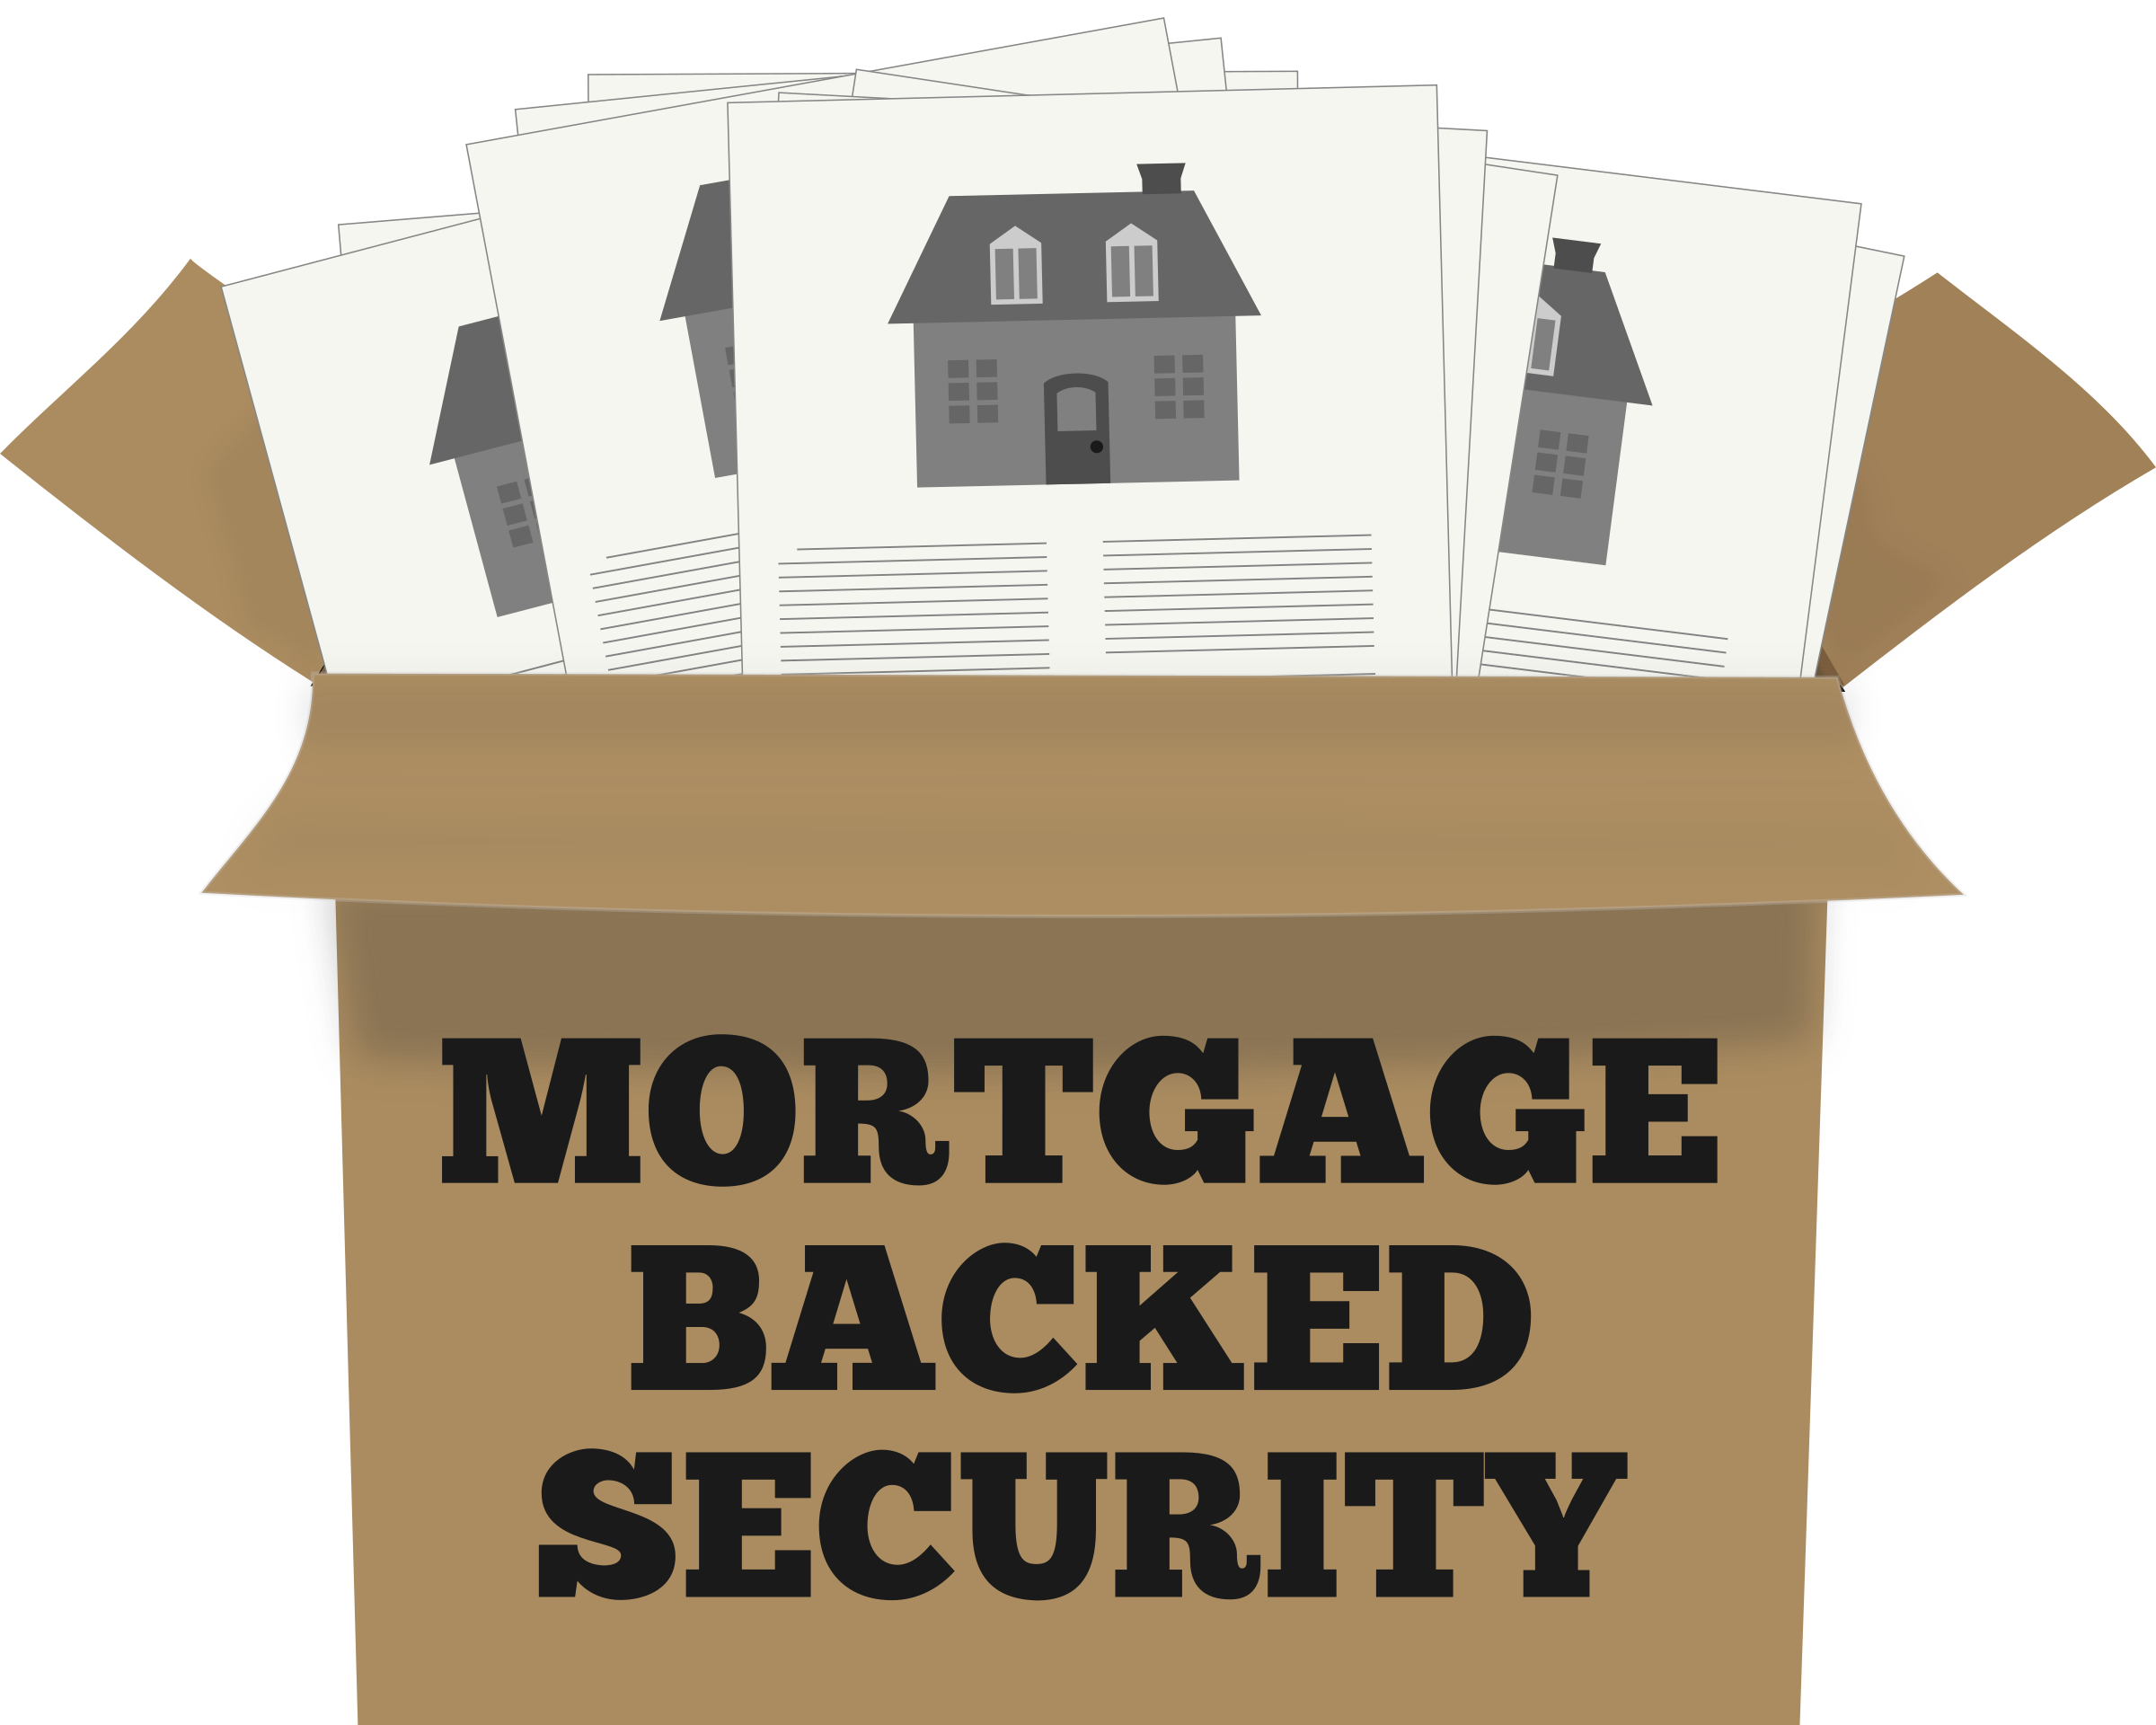 Mortgage backed security by Alastair